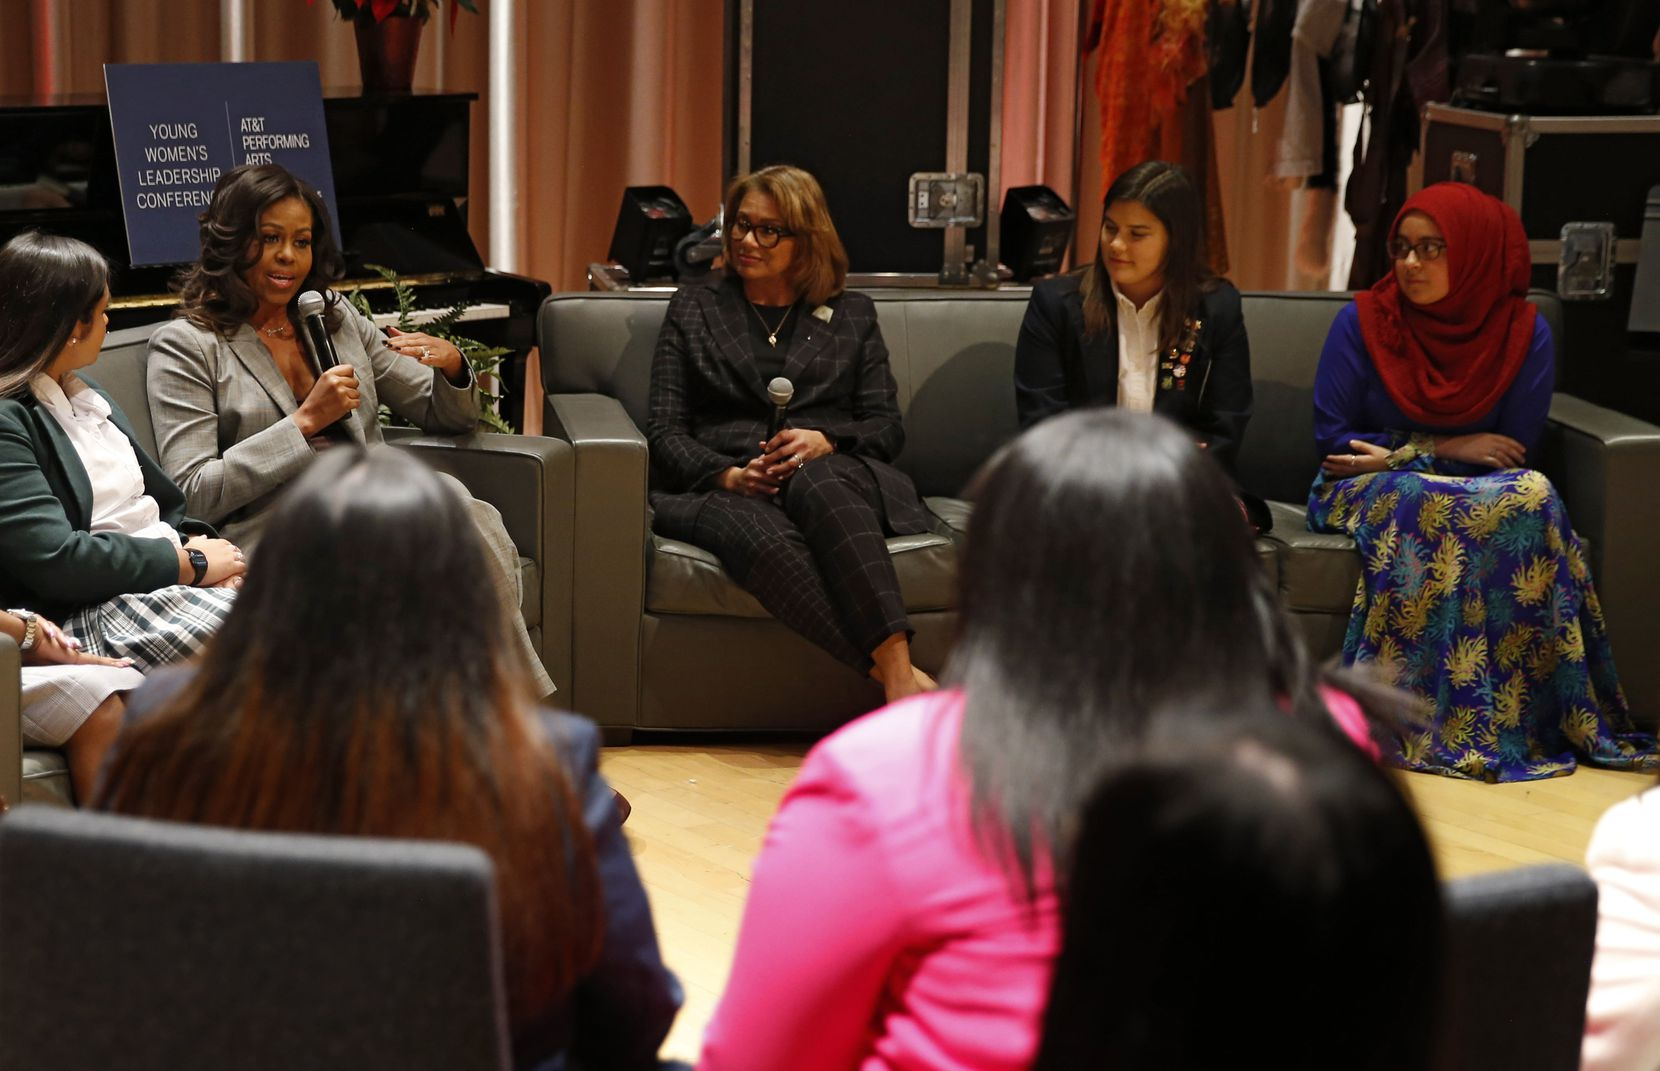 Iman Ikram (far right) of Qalam Collegiate Academy listened as former first lady Michelle Obama spoke to Dallas-area students during the first Young Women's Leadership Conference in 2018.